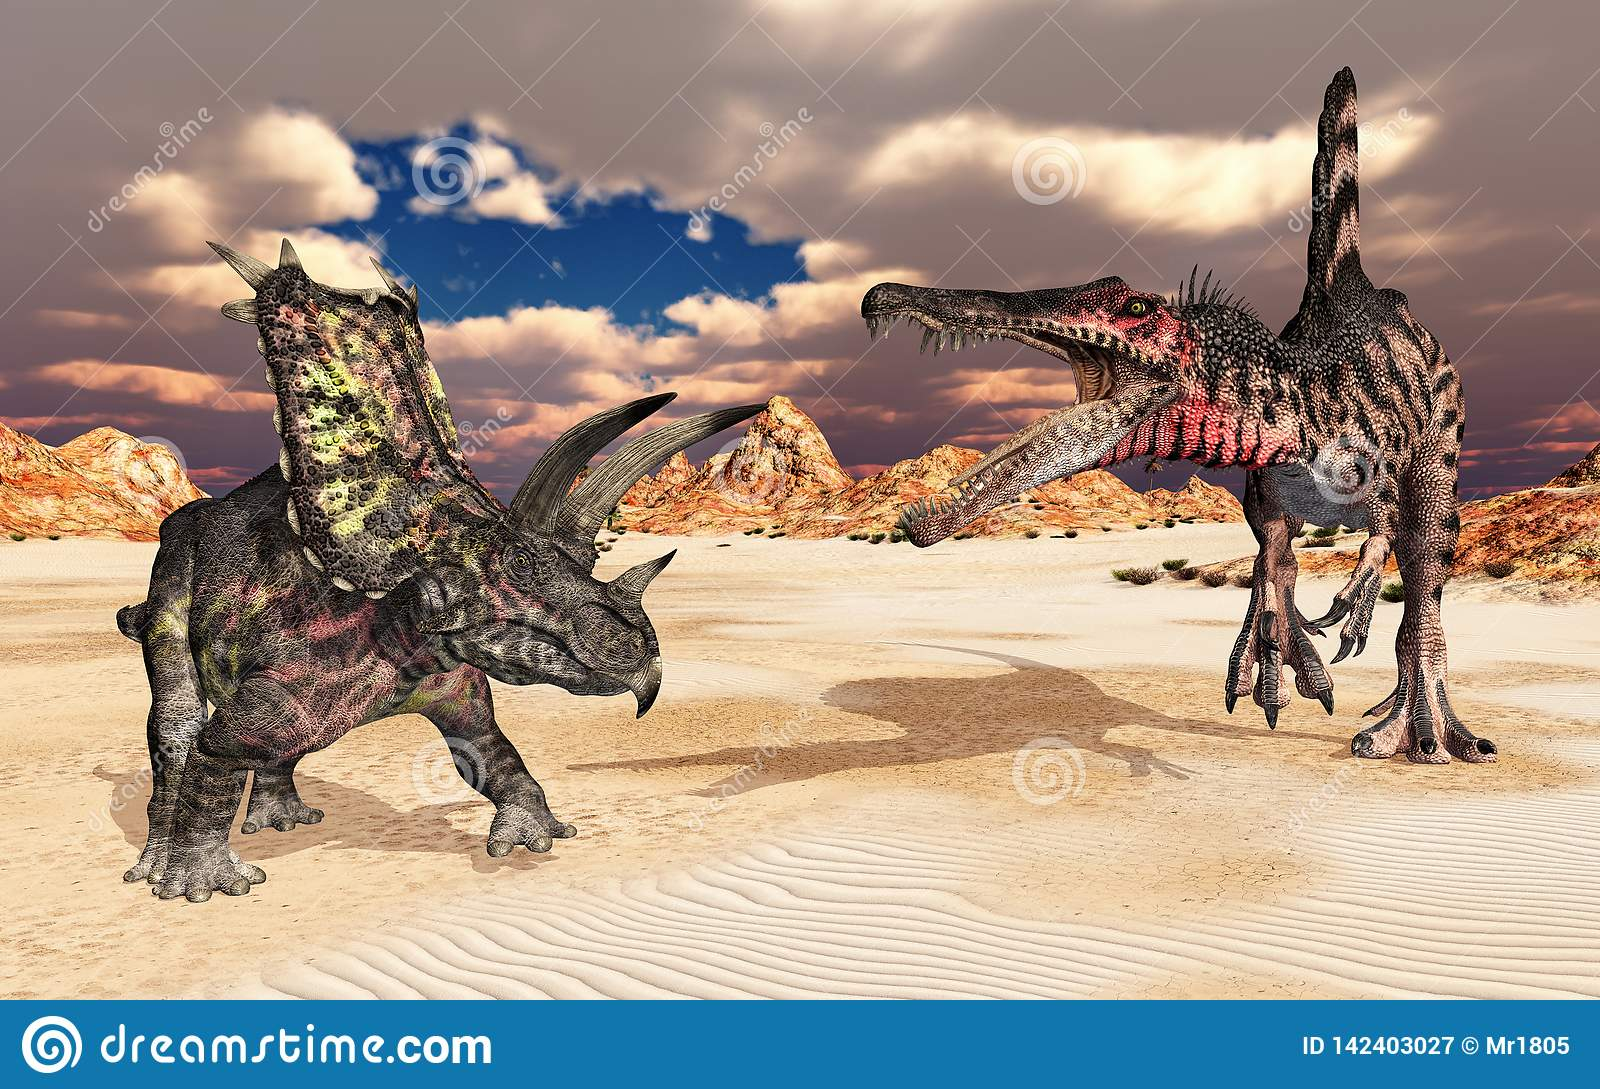 The dinosaurs Pentaceratops and Spinosaurus in a landscape